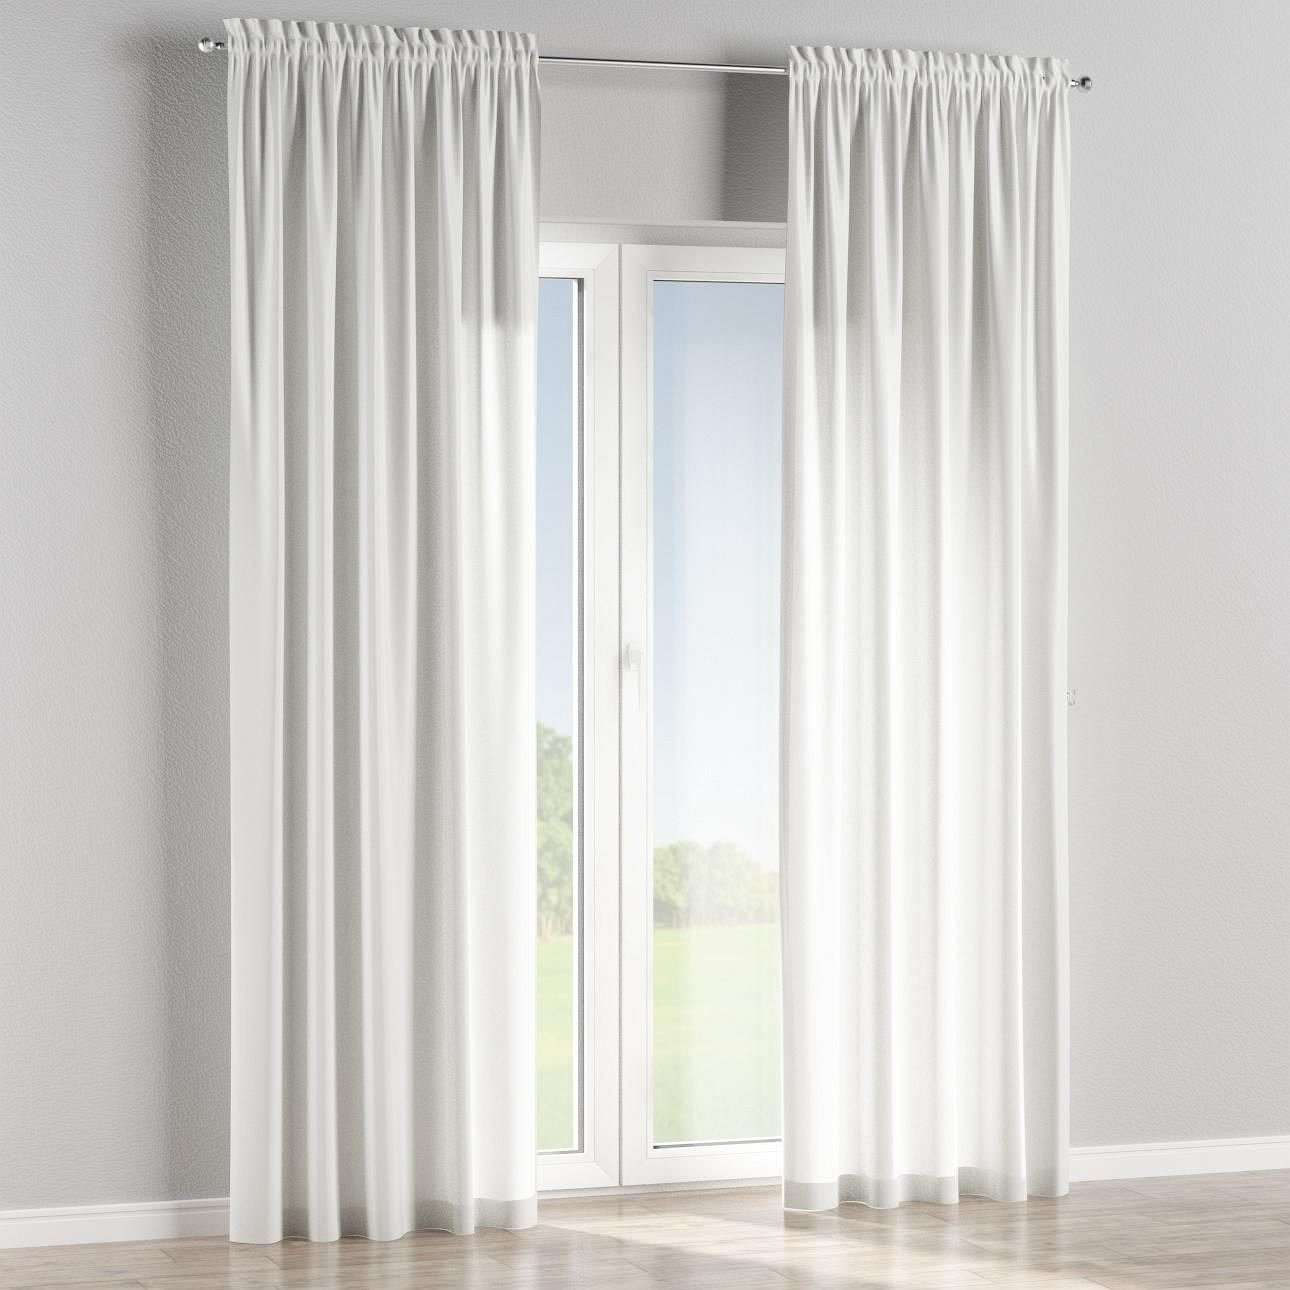 Slot and frill lined curtains in collection Arcana, fabric: 102-01